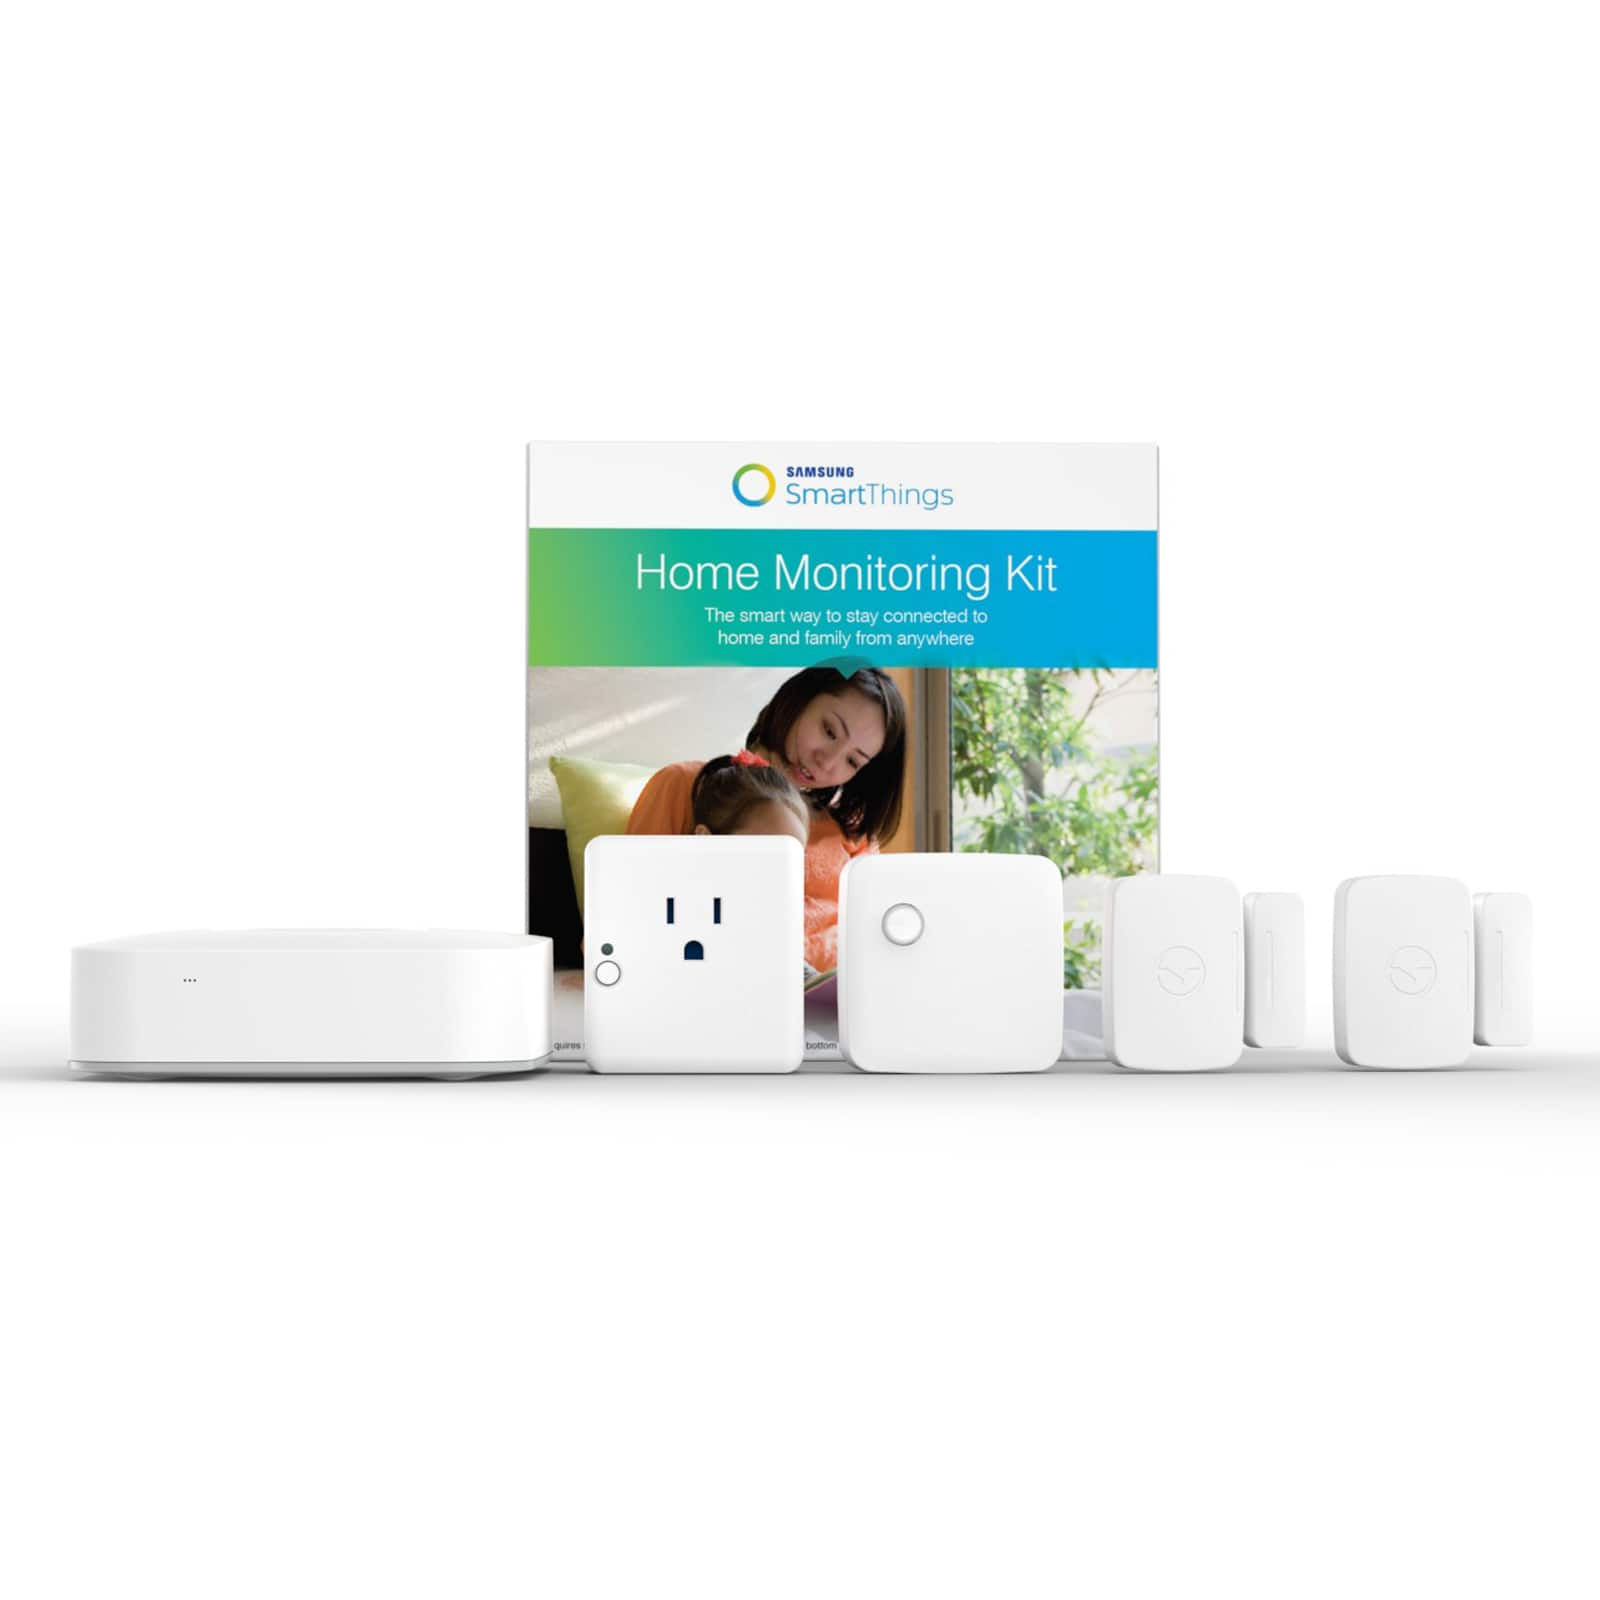 Samsung SmartThings Home Monitoring Kit - $199